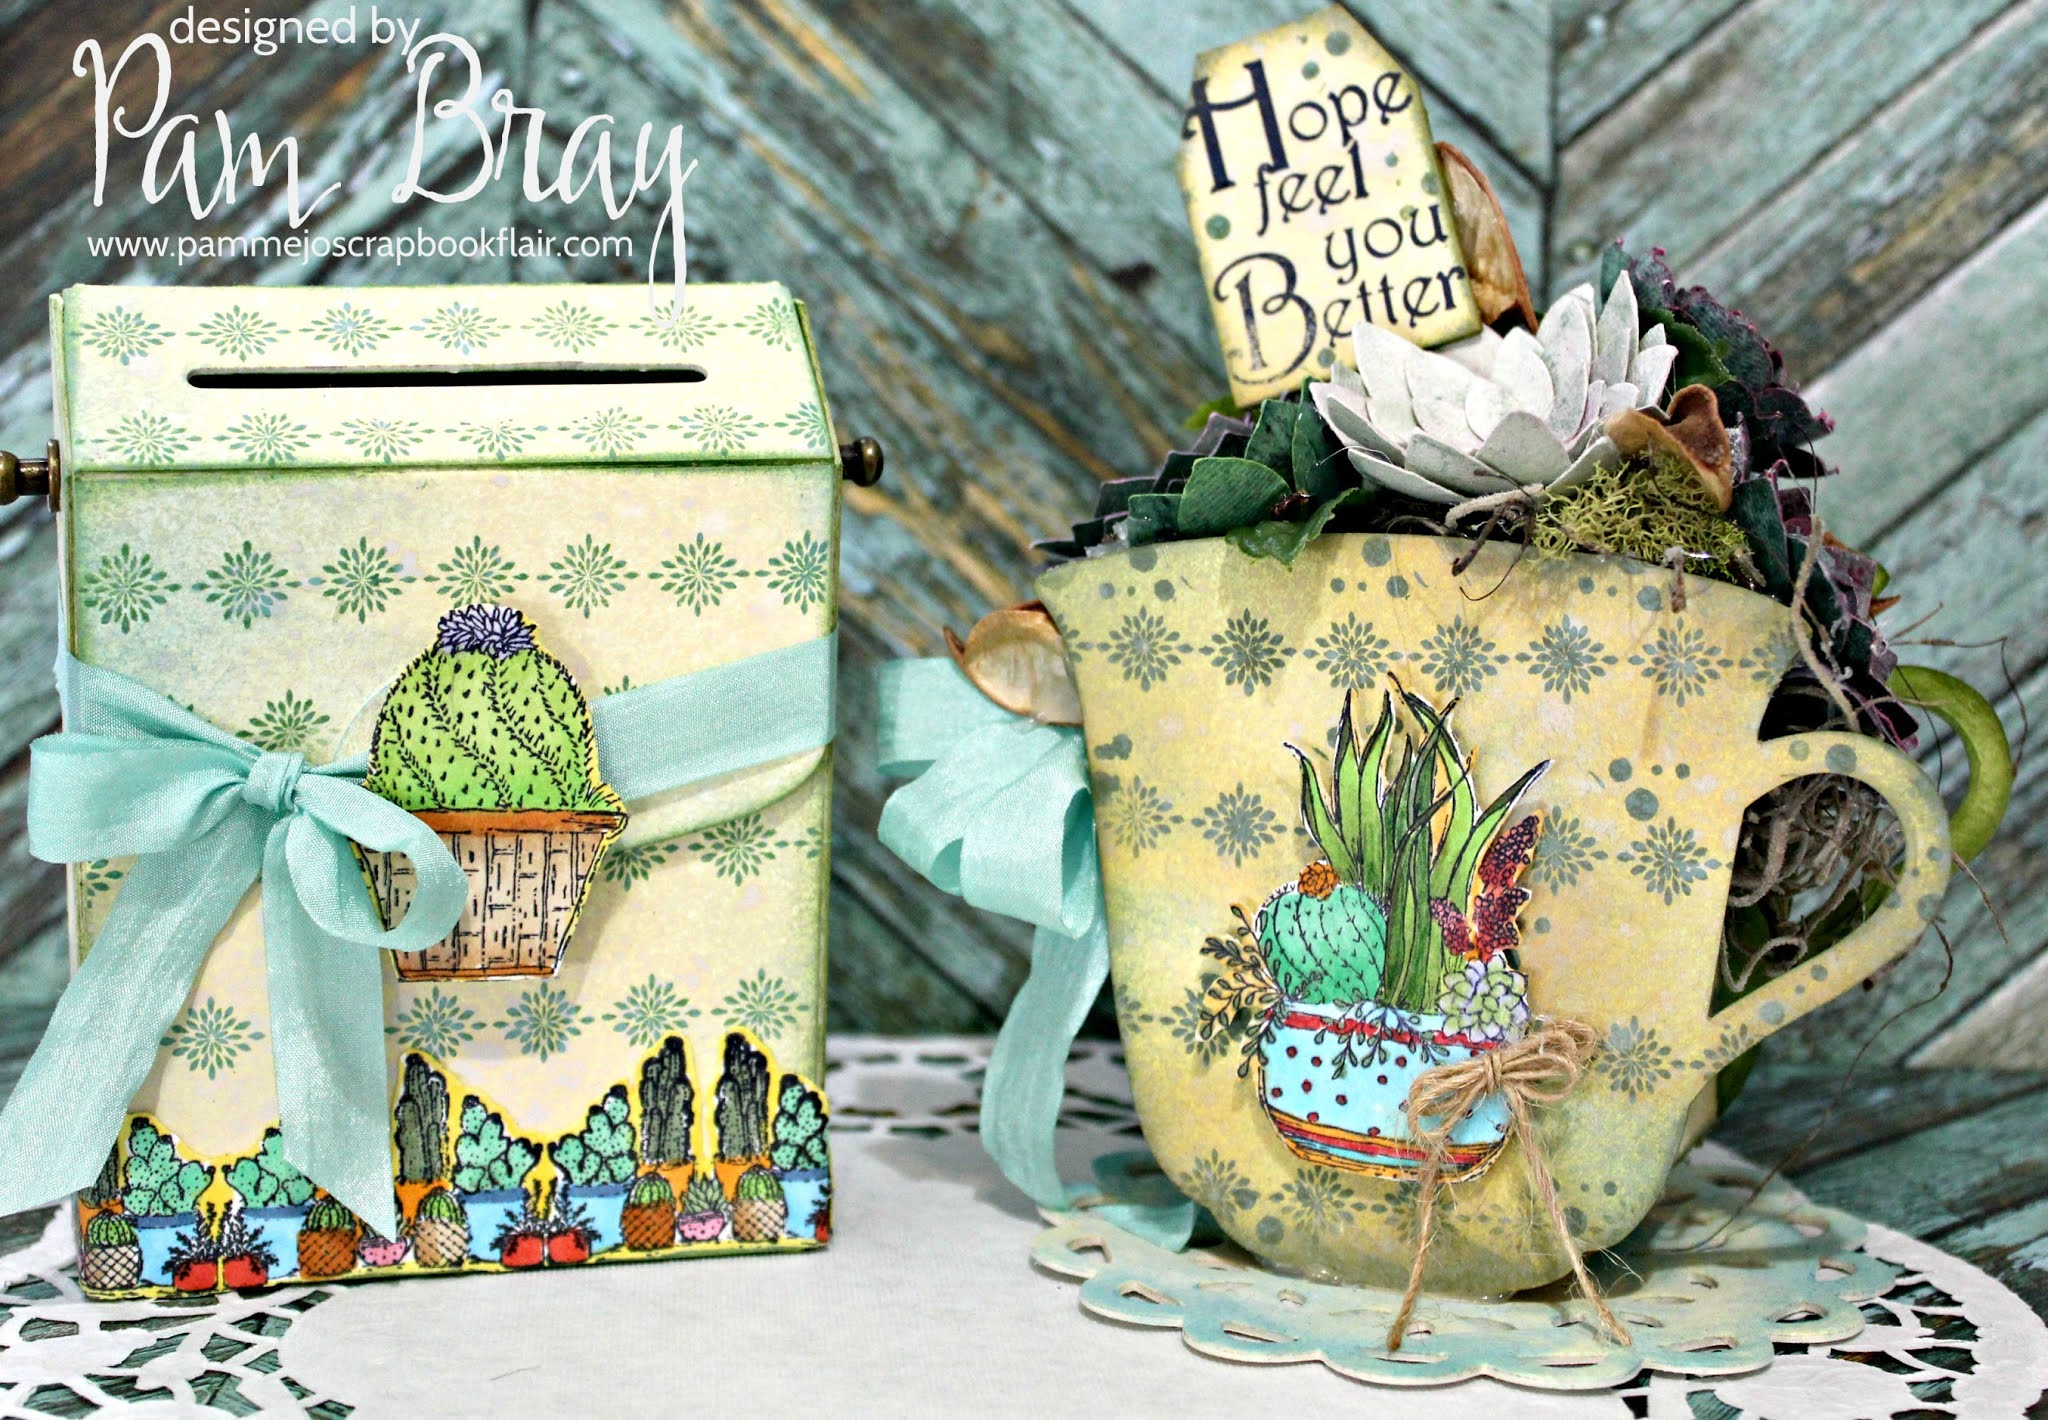 Pam Bray Designs: A Girl with Flair: Eileen Hull Teacup and Post Box  Release!!!